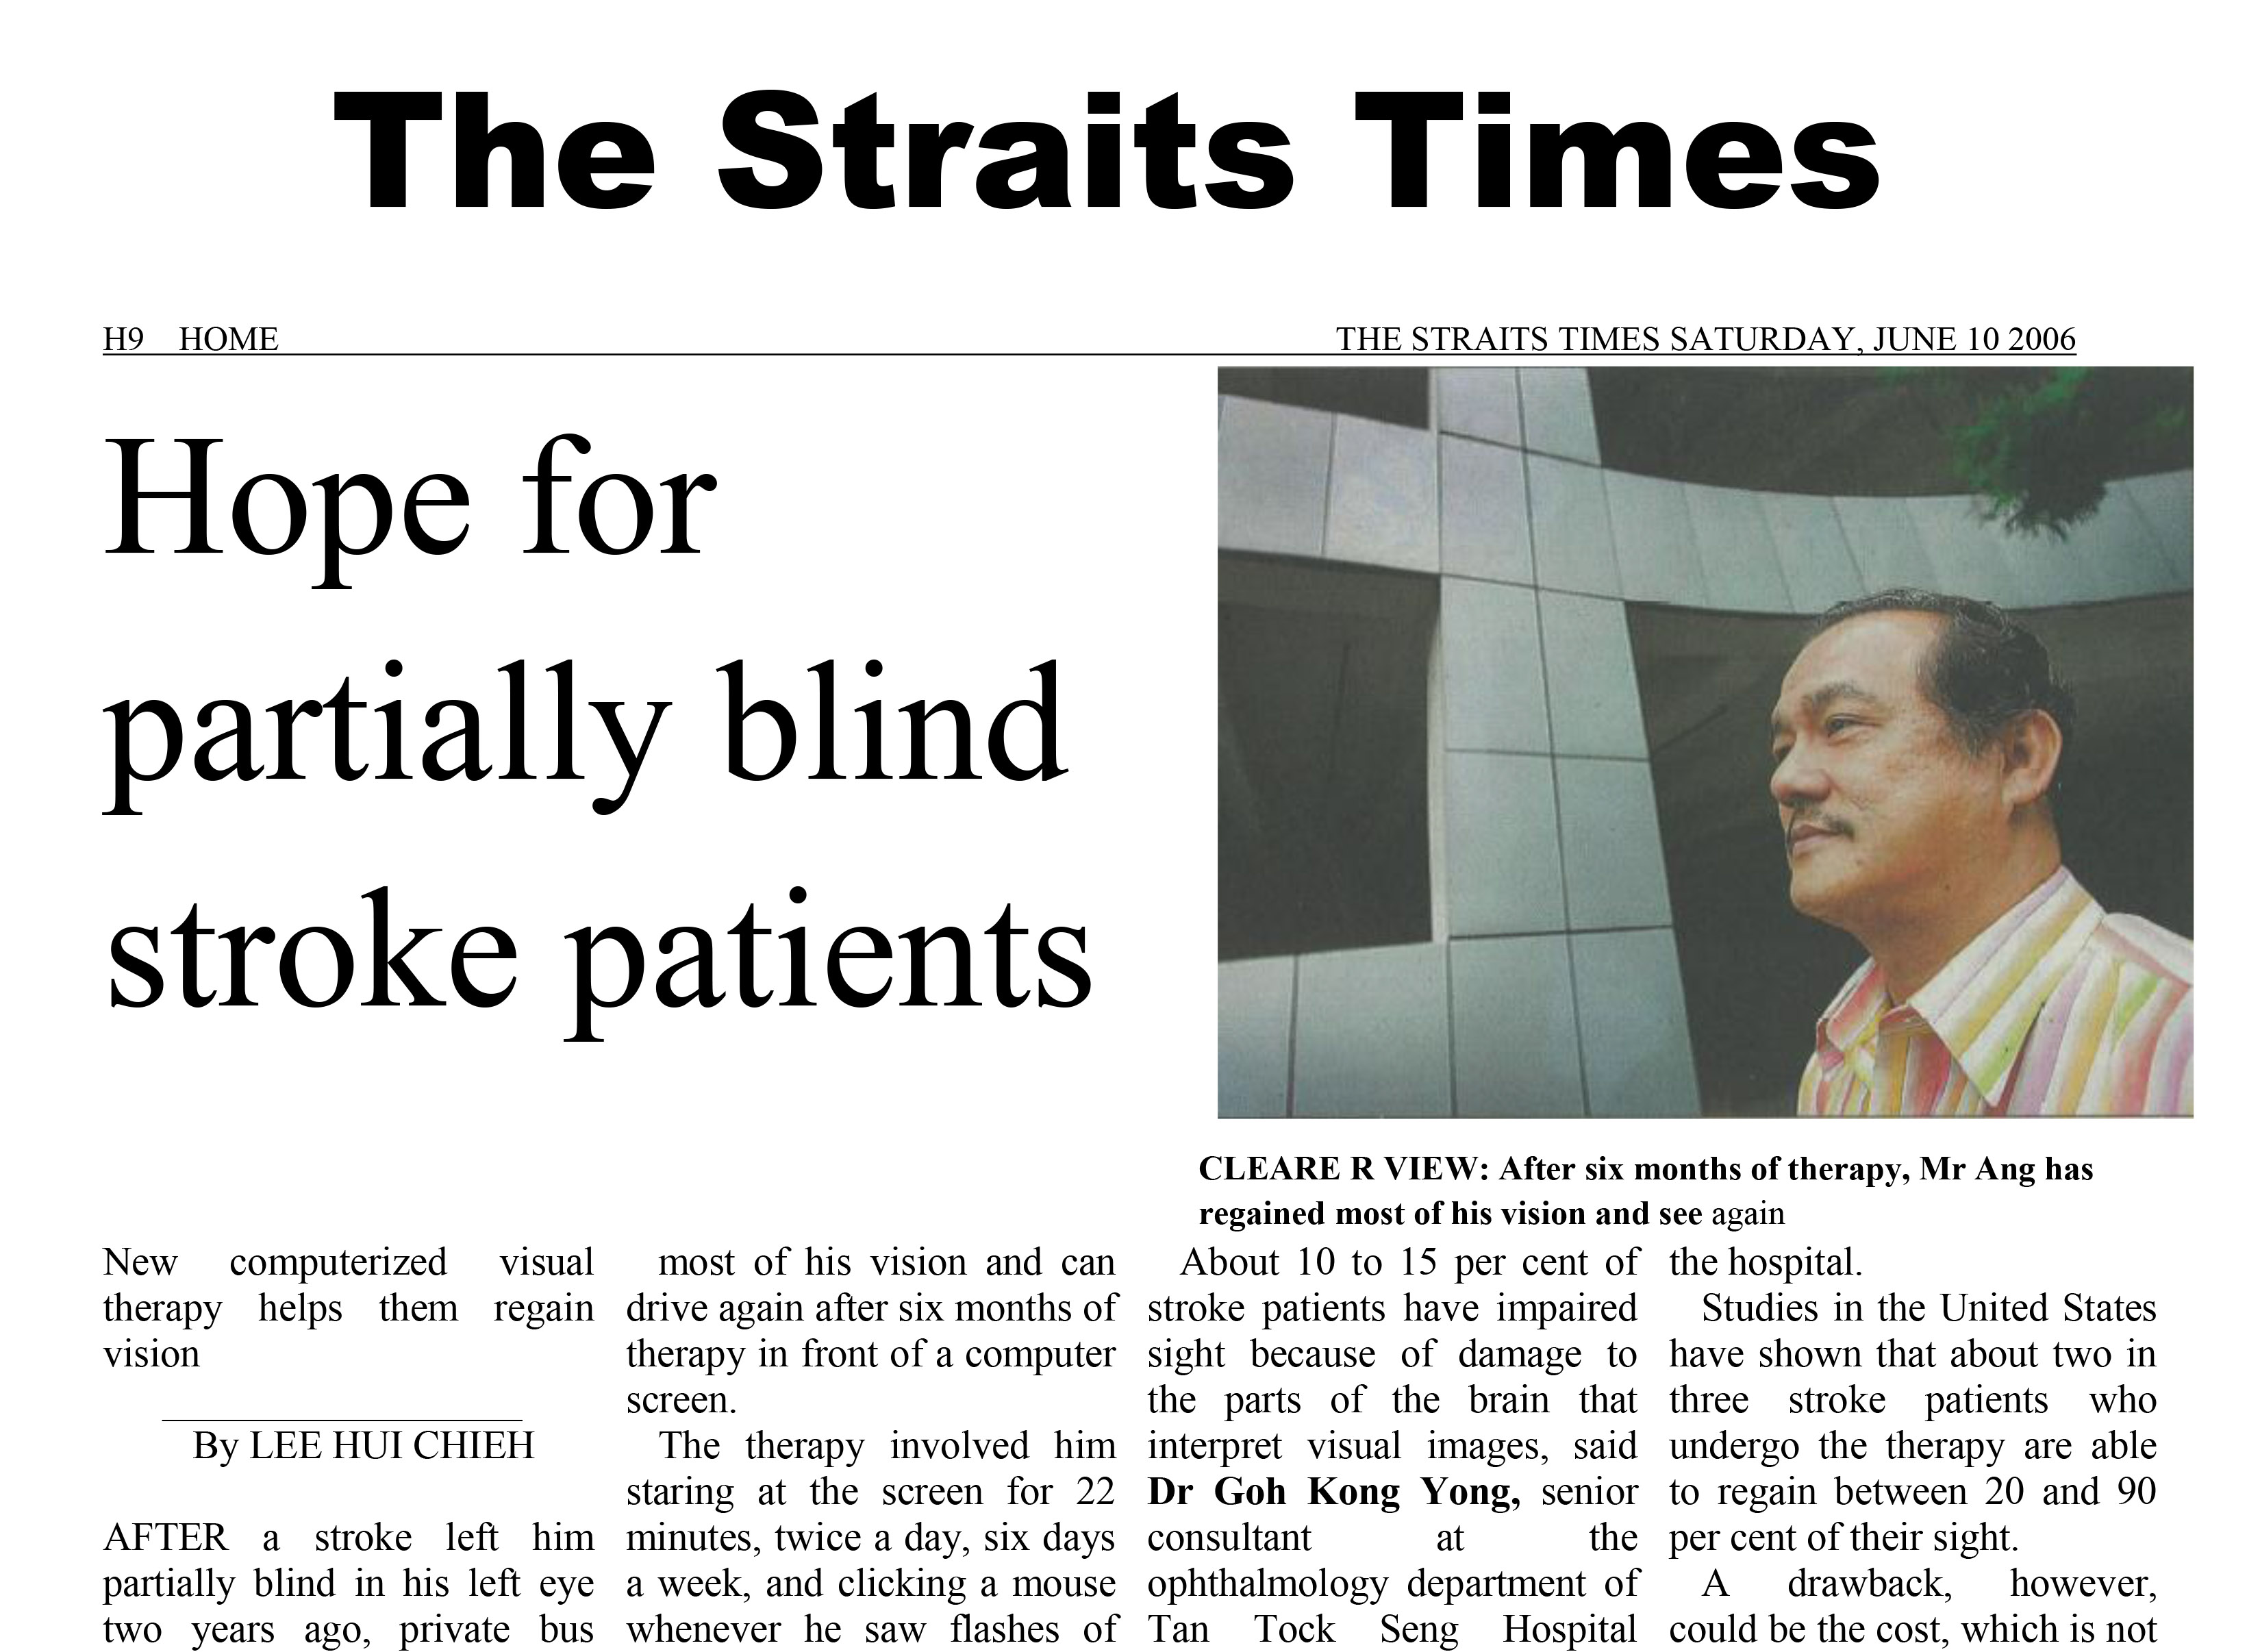 The Straits Times HOPE FOR PARTIALLY BLIND STROKE PATIENTS